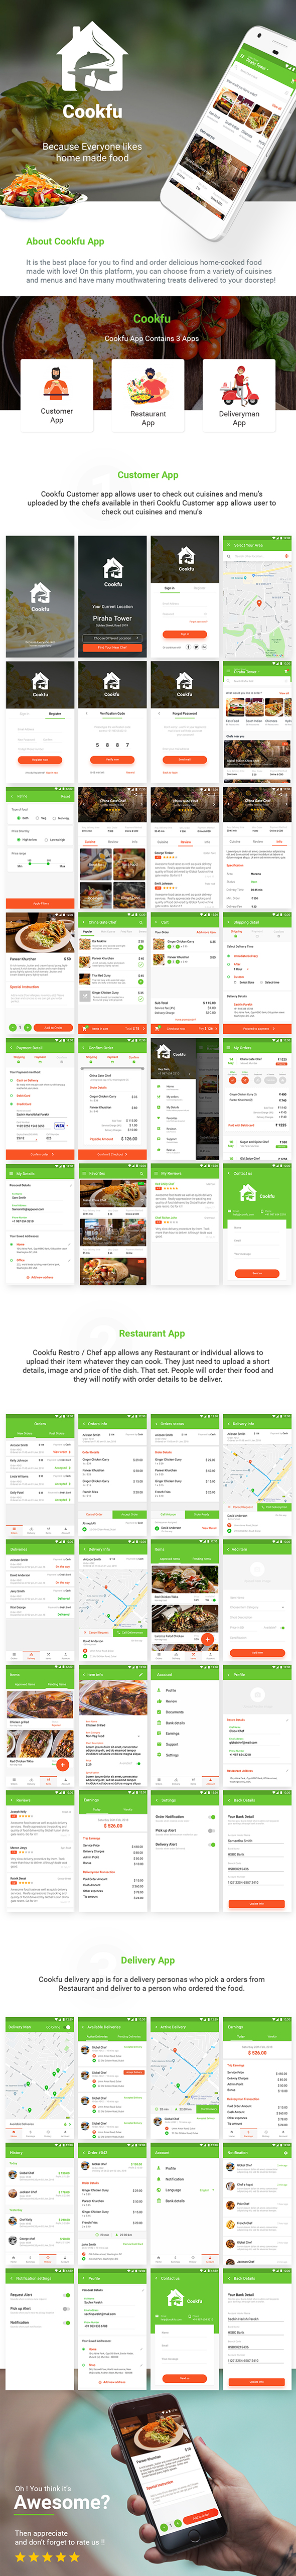 Food Ordering app with Delivery + Restaurant Android App Template | Cookfu (XML Code) - 5